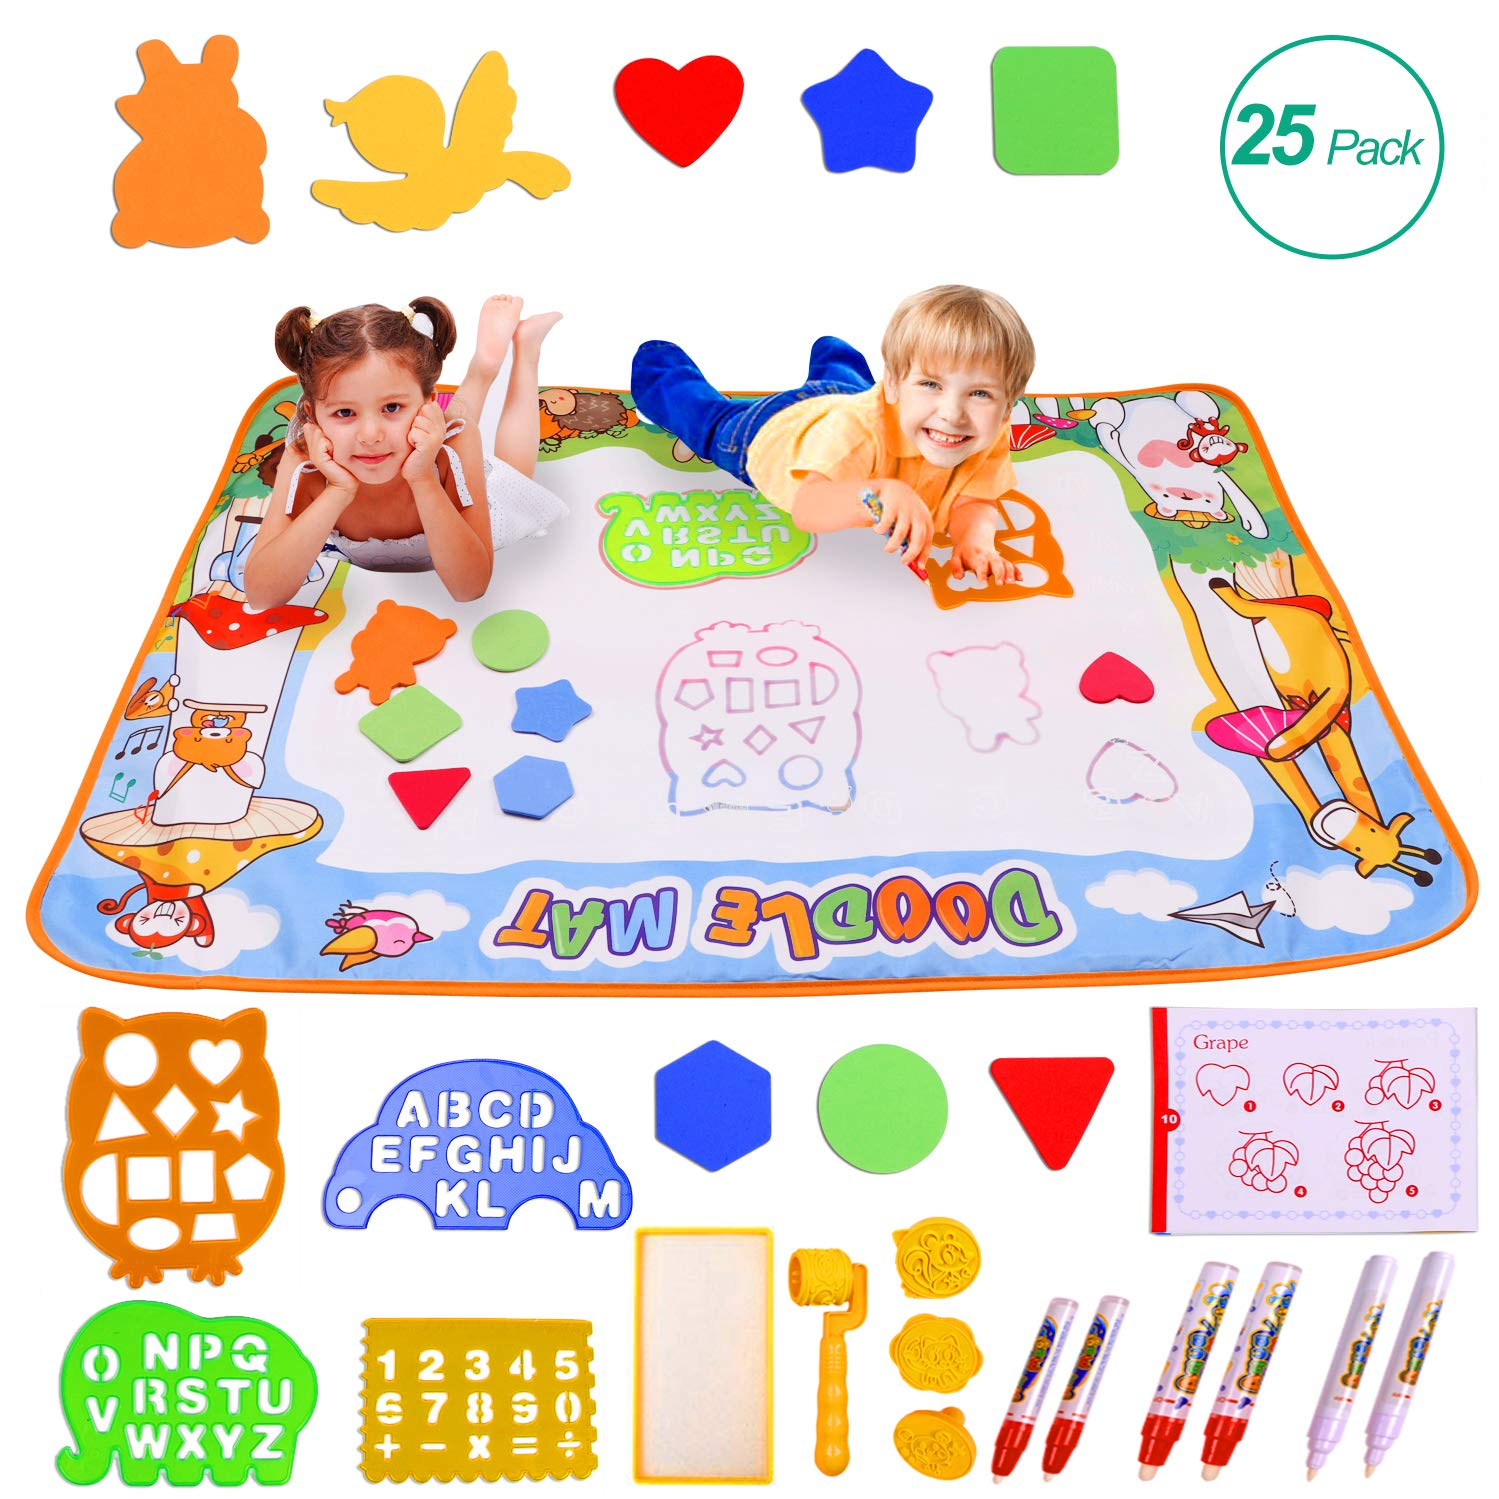 "Miserwe Large Aqua Doodle Mat Water Writing Doodle Drawing Mat Neon Colors Board, with 25 Pack Drawing Accessories for Kids Toys Toddlers Educational Girls Boys Size 39.3"" X 27.5"""